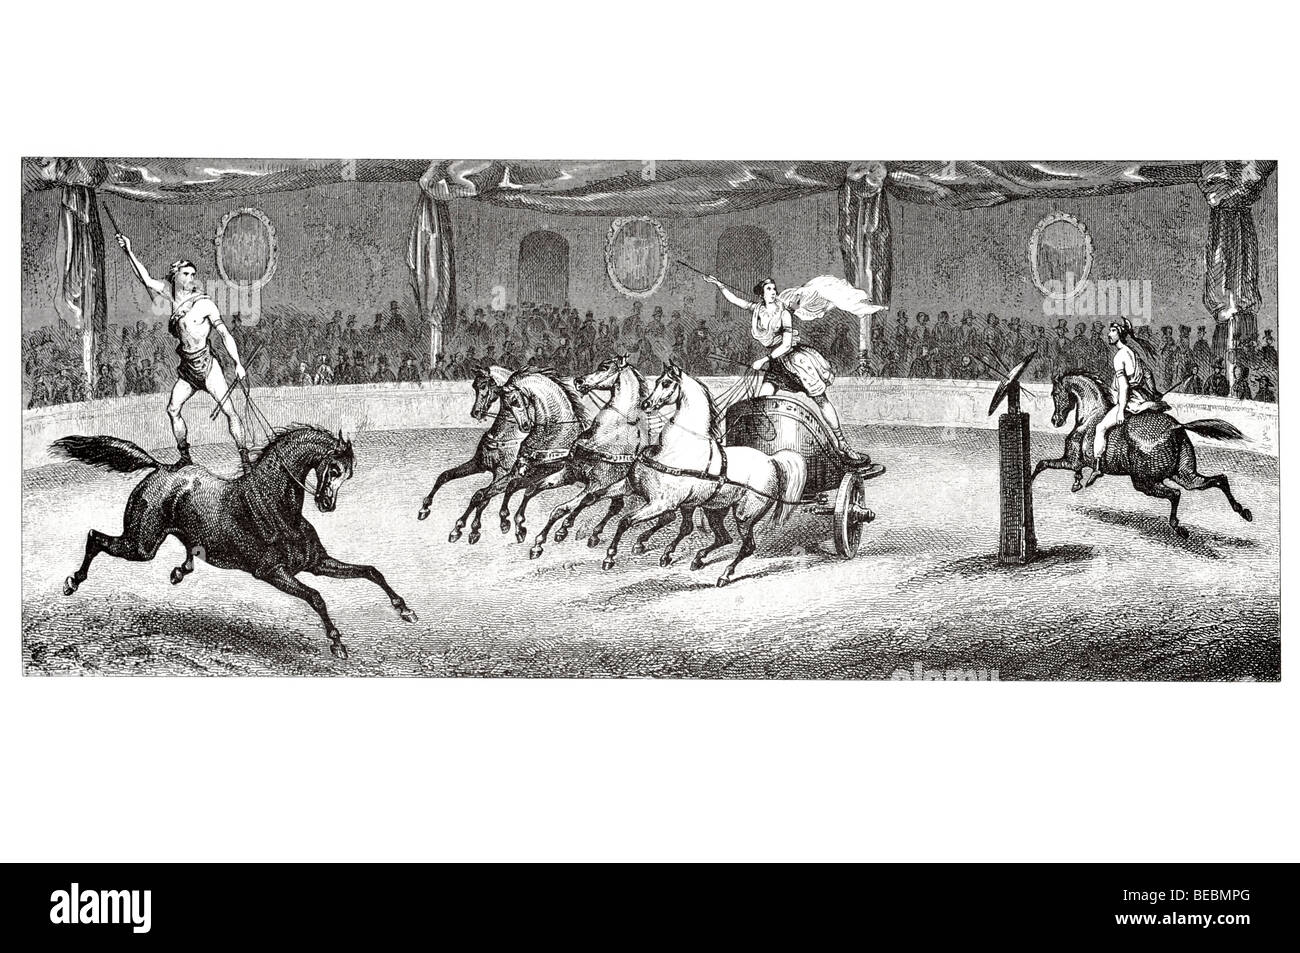 equestrian feats - Stock Image